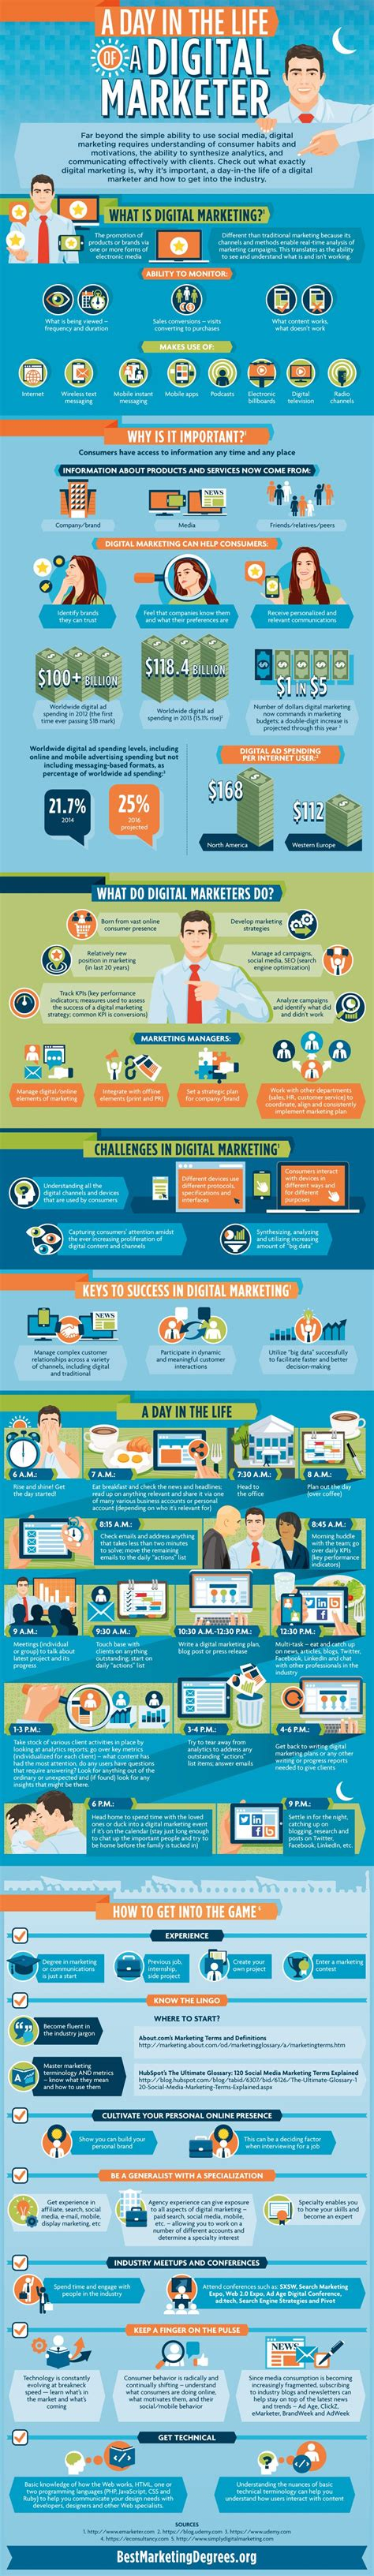 Digital Marketing Degree Florida by A Day In The Of A Digital Marketer Best Marketing